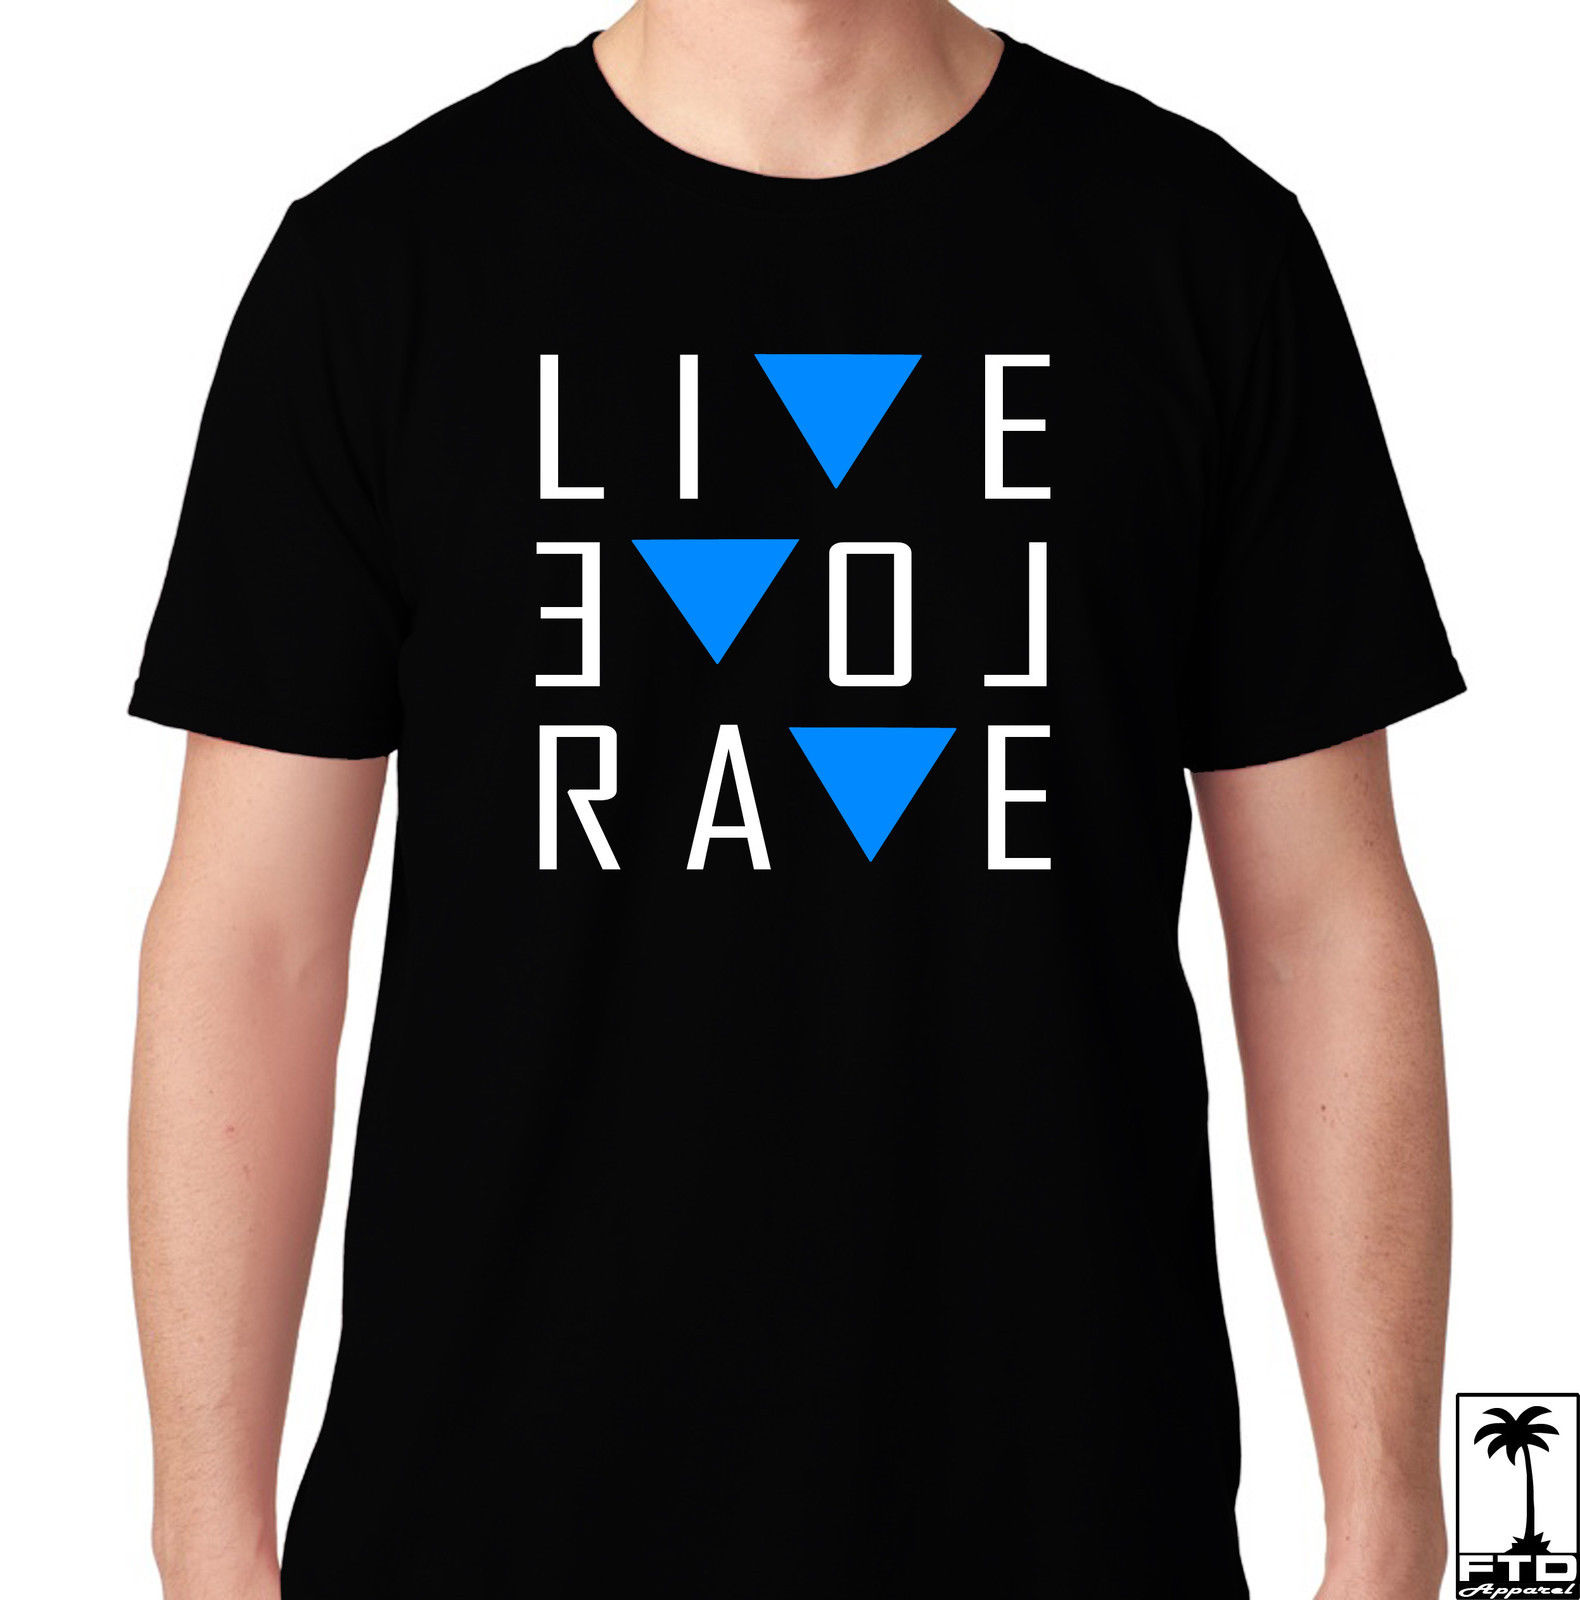 LIVE LOVE RAVE EDM MUSIC HOUSE ELECTRO DUBSTEP MUSIC DJ CLUB HARDFEST T SHIRT 100% cotton tee shirt, tops wholesale tee image